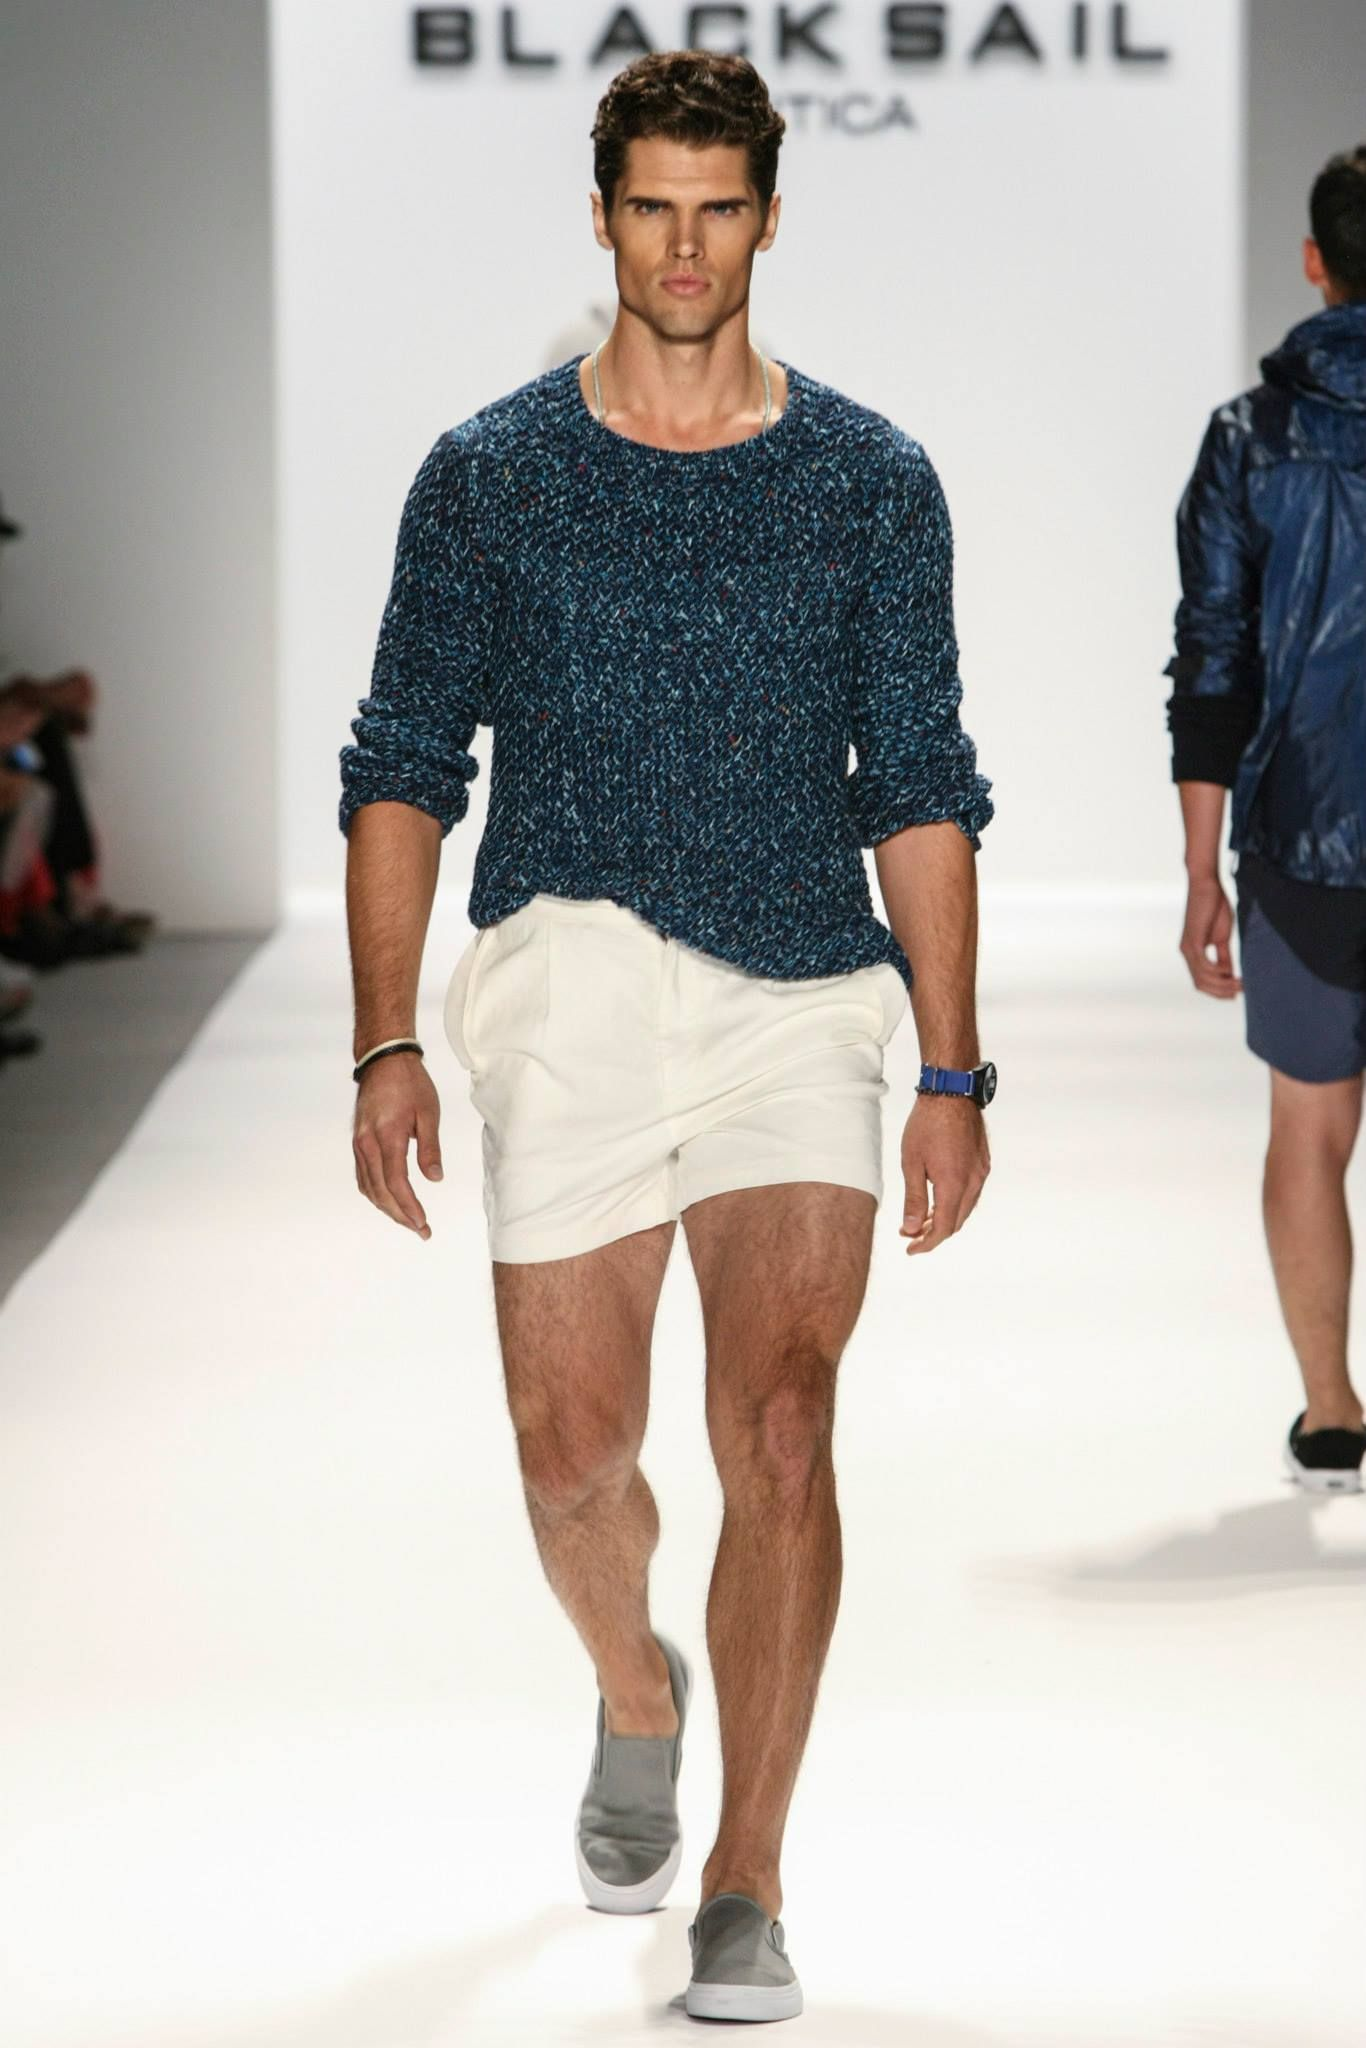 Nautica Men 39 S Spring 2014 Black Sail Fashion Show Sartorial Exposure Summer Style For Men